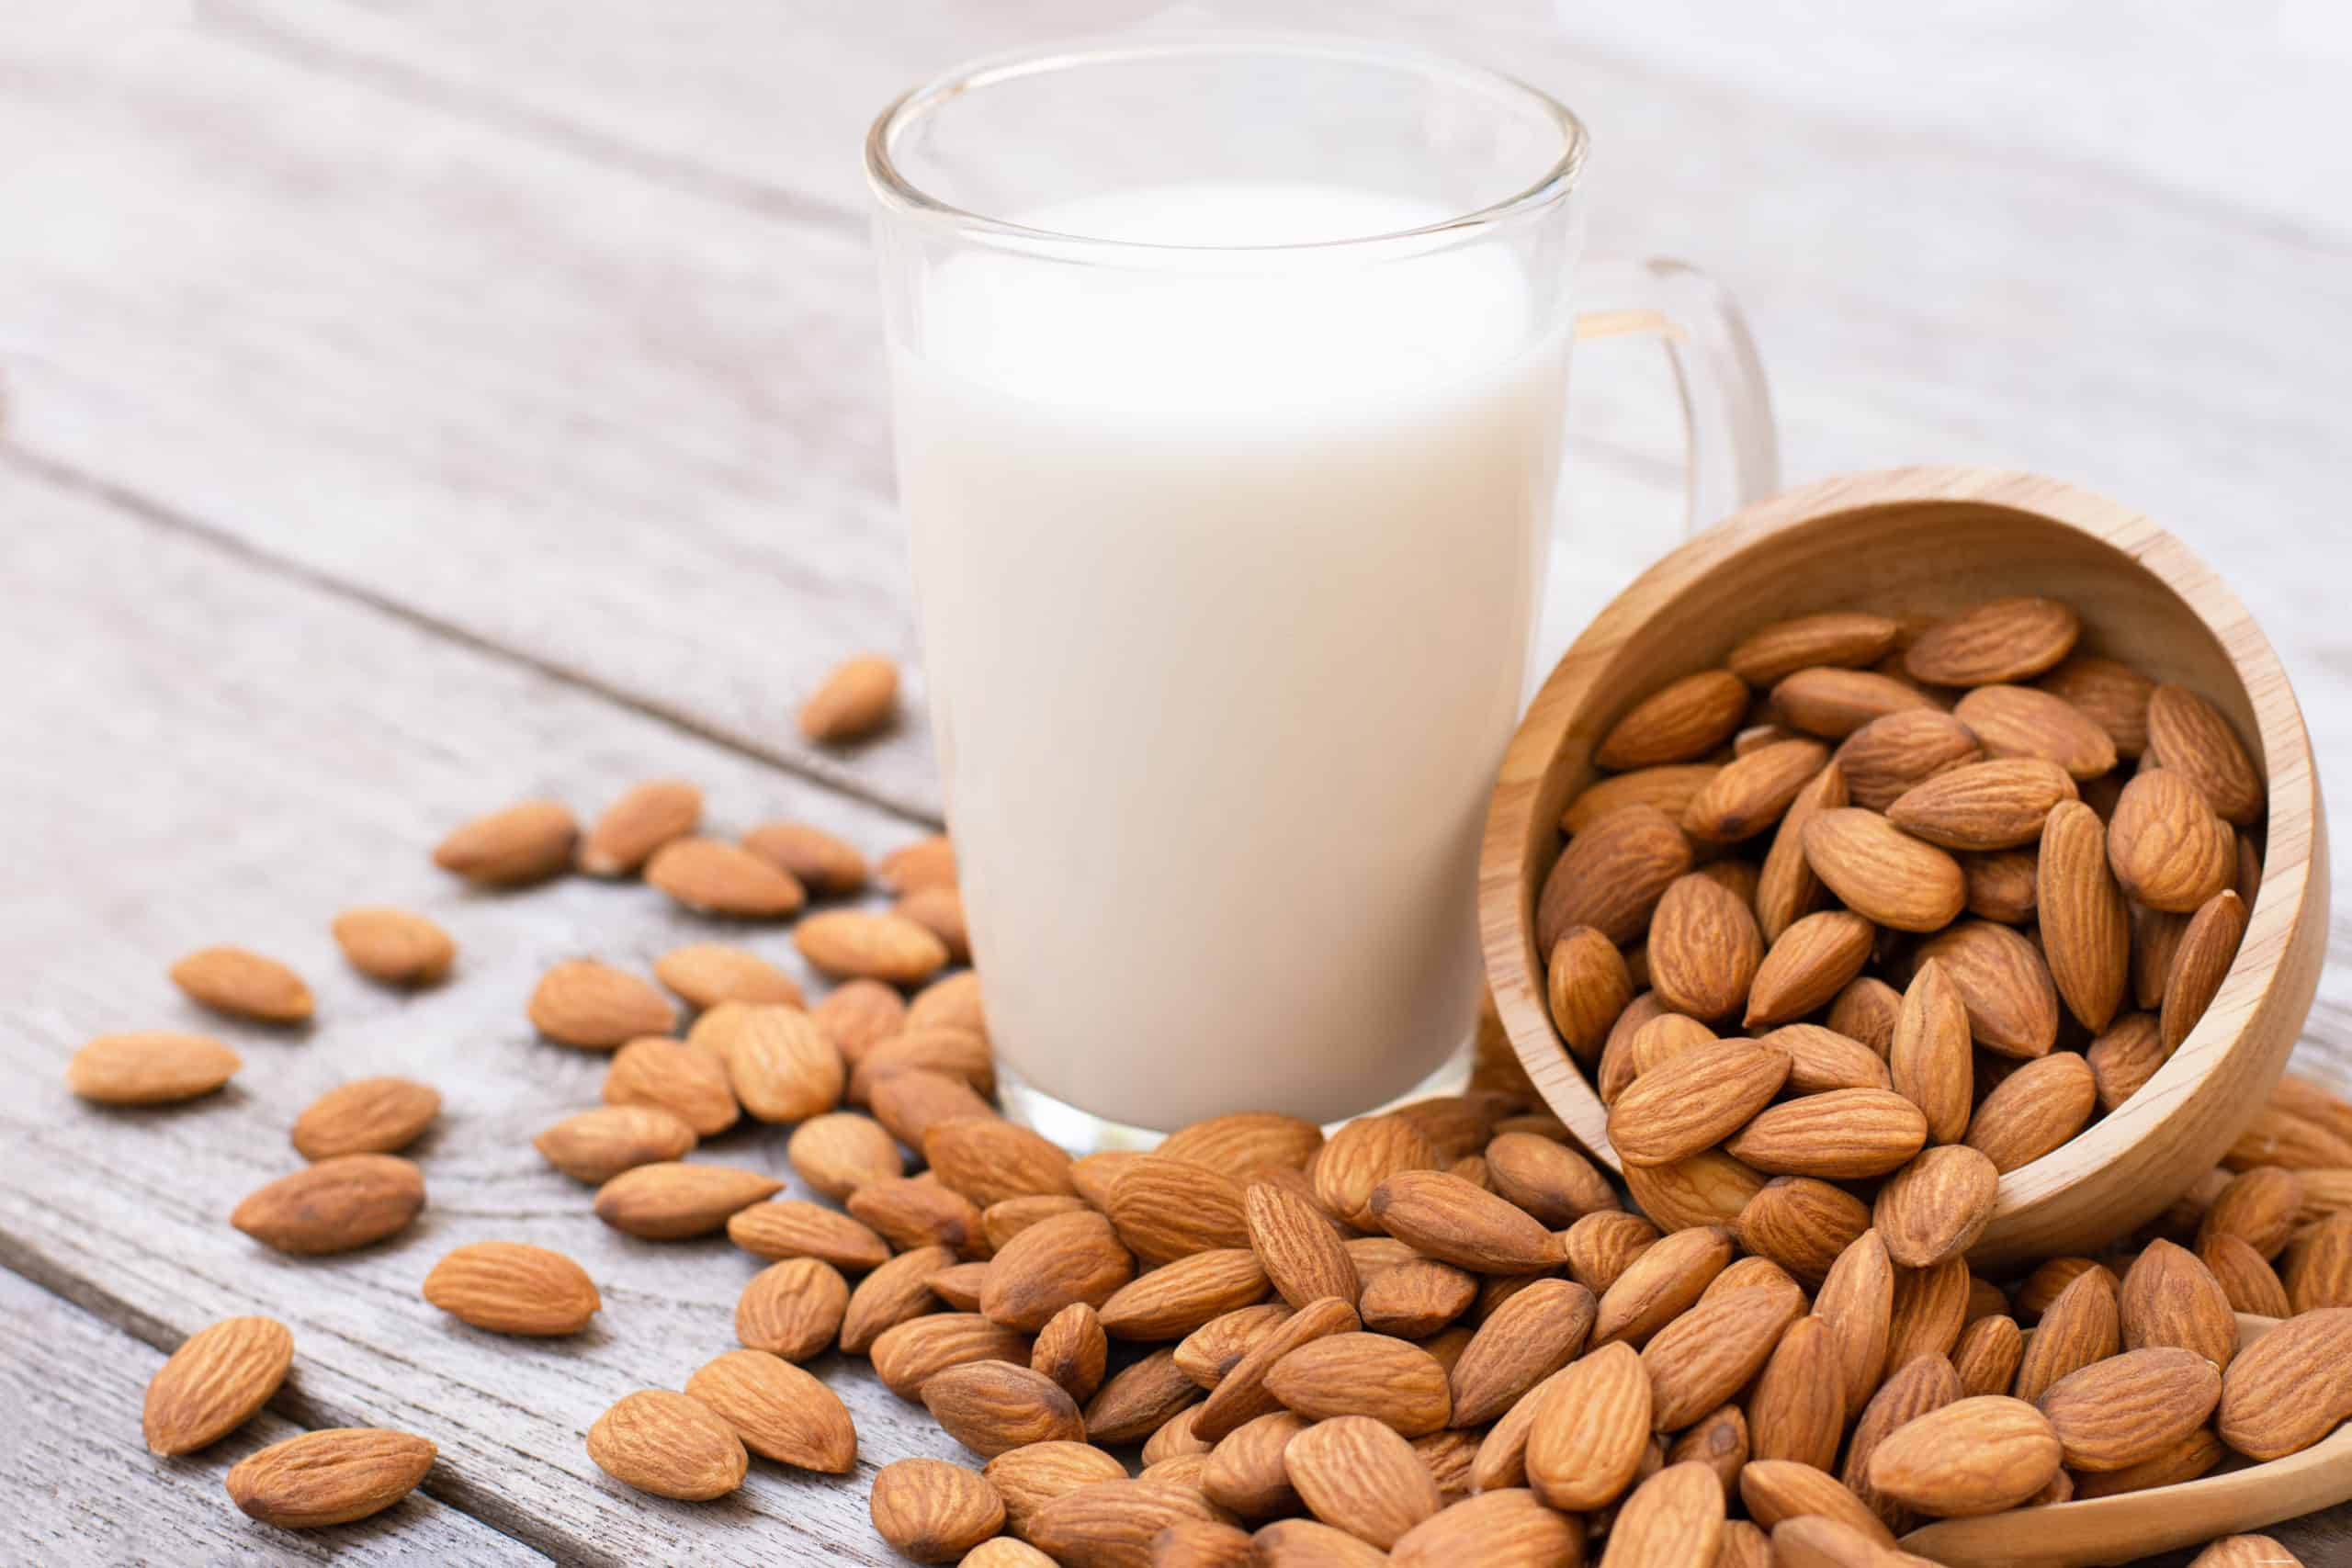 What are the prospects for plant-based milks post-pandemic?